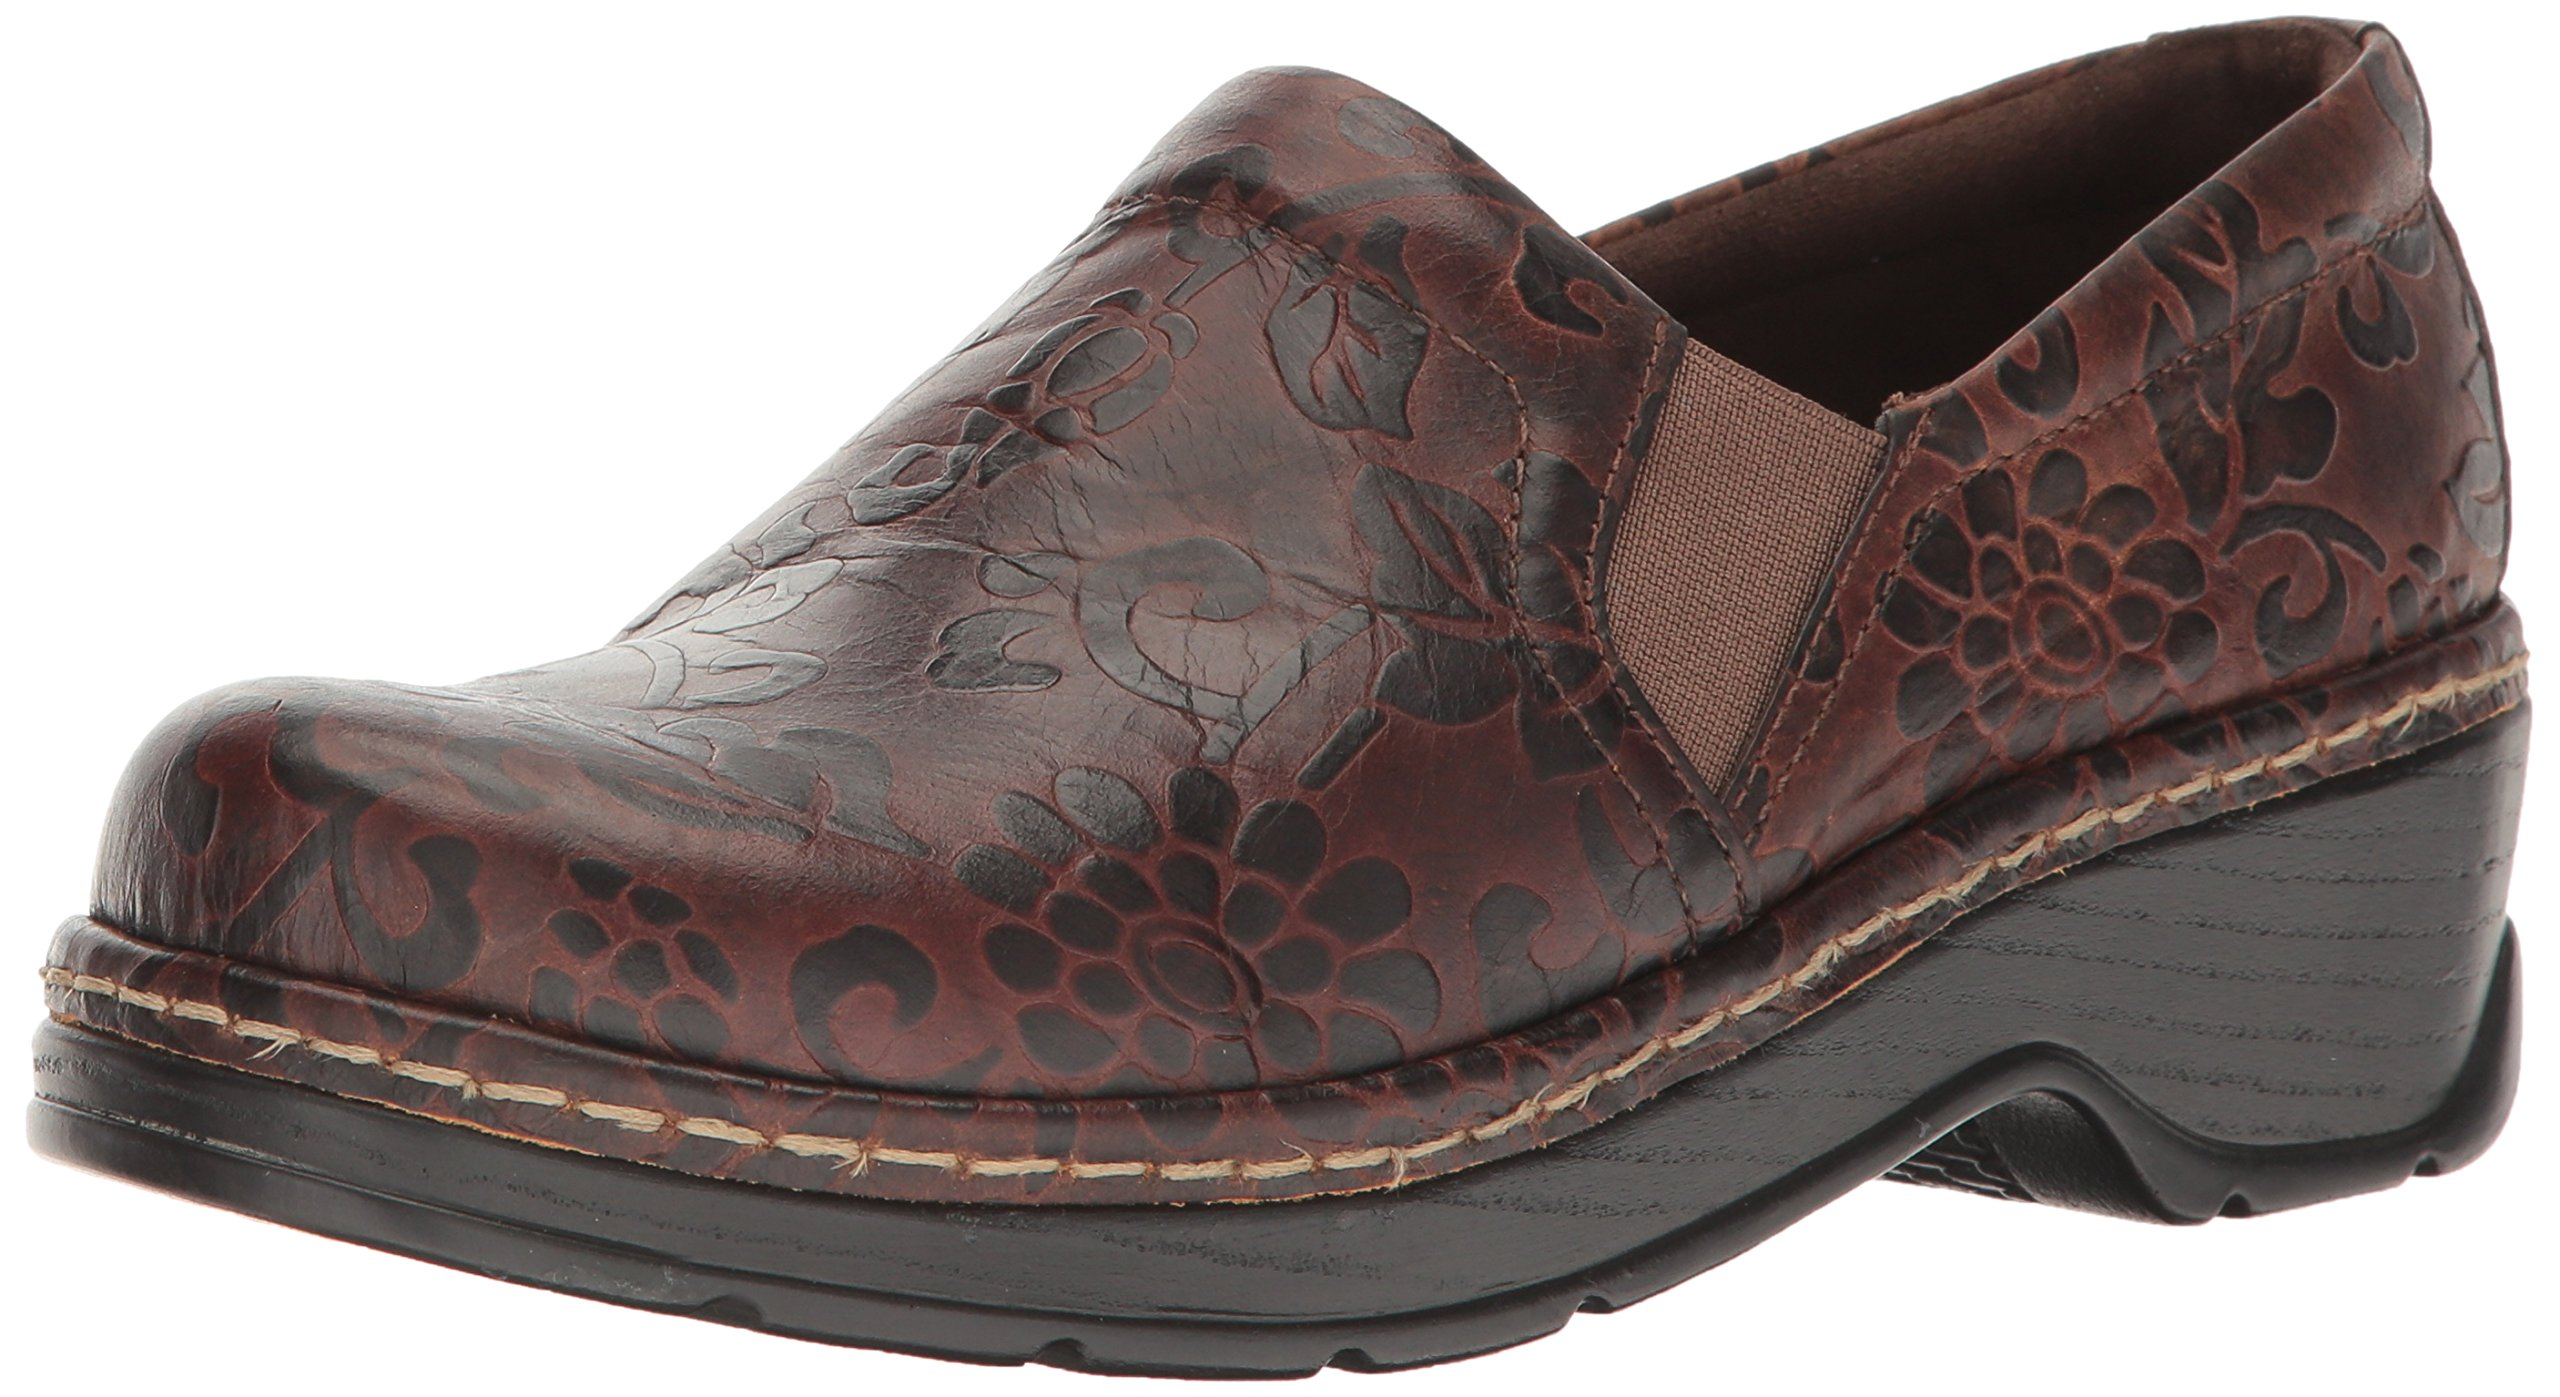 Klogs Unisex Naples Brown Flower Tooled Shoes - 8 M (C)